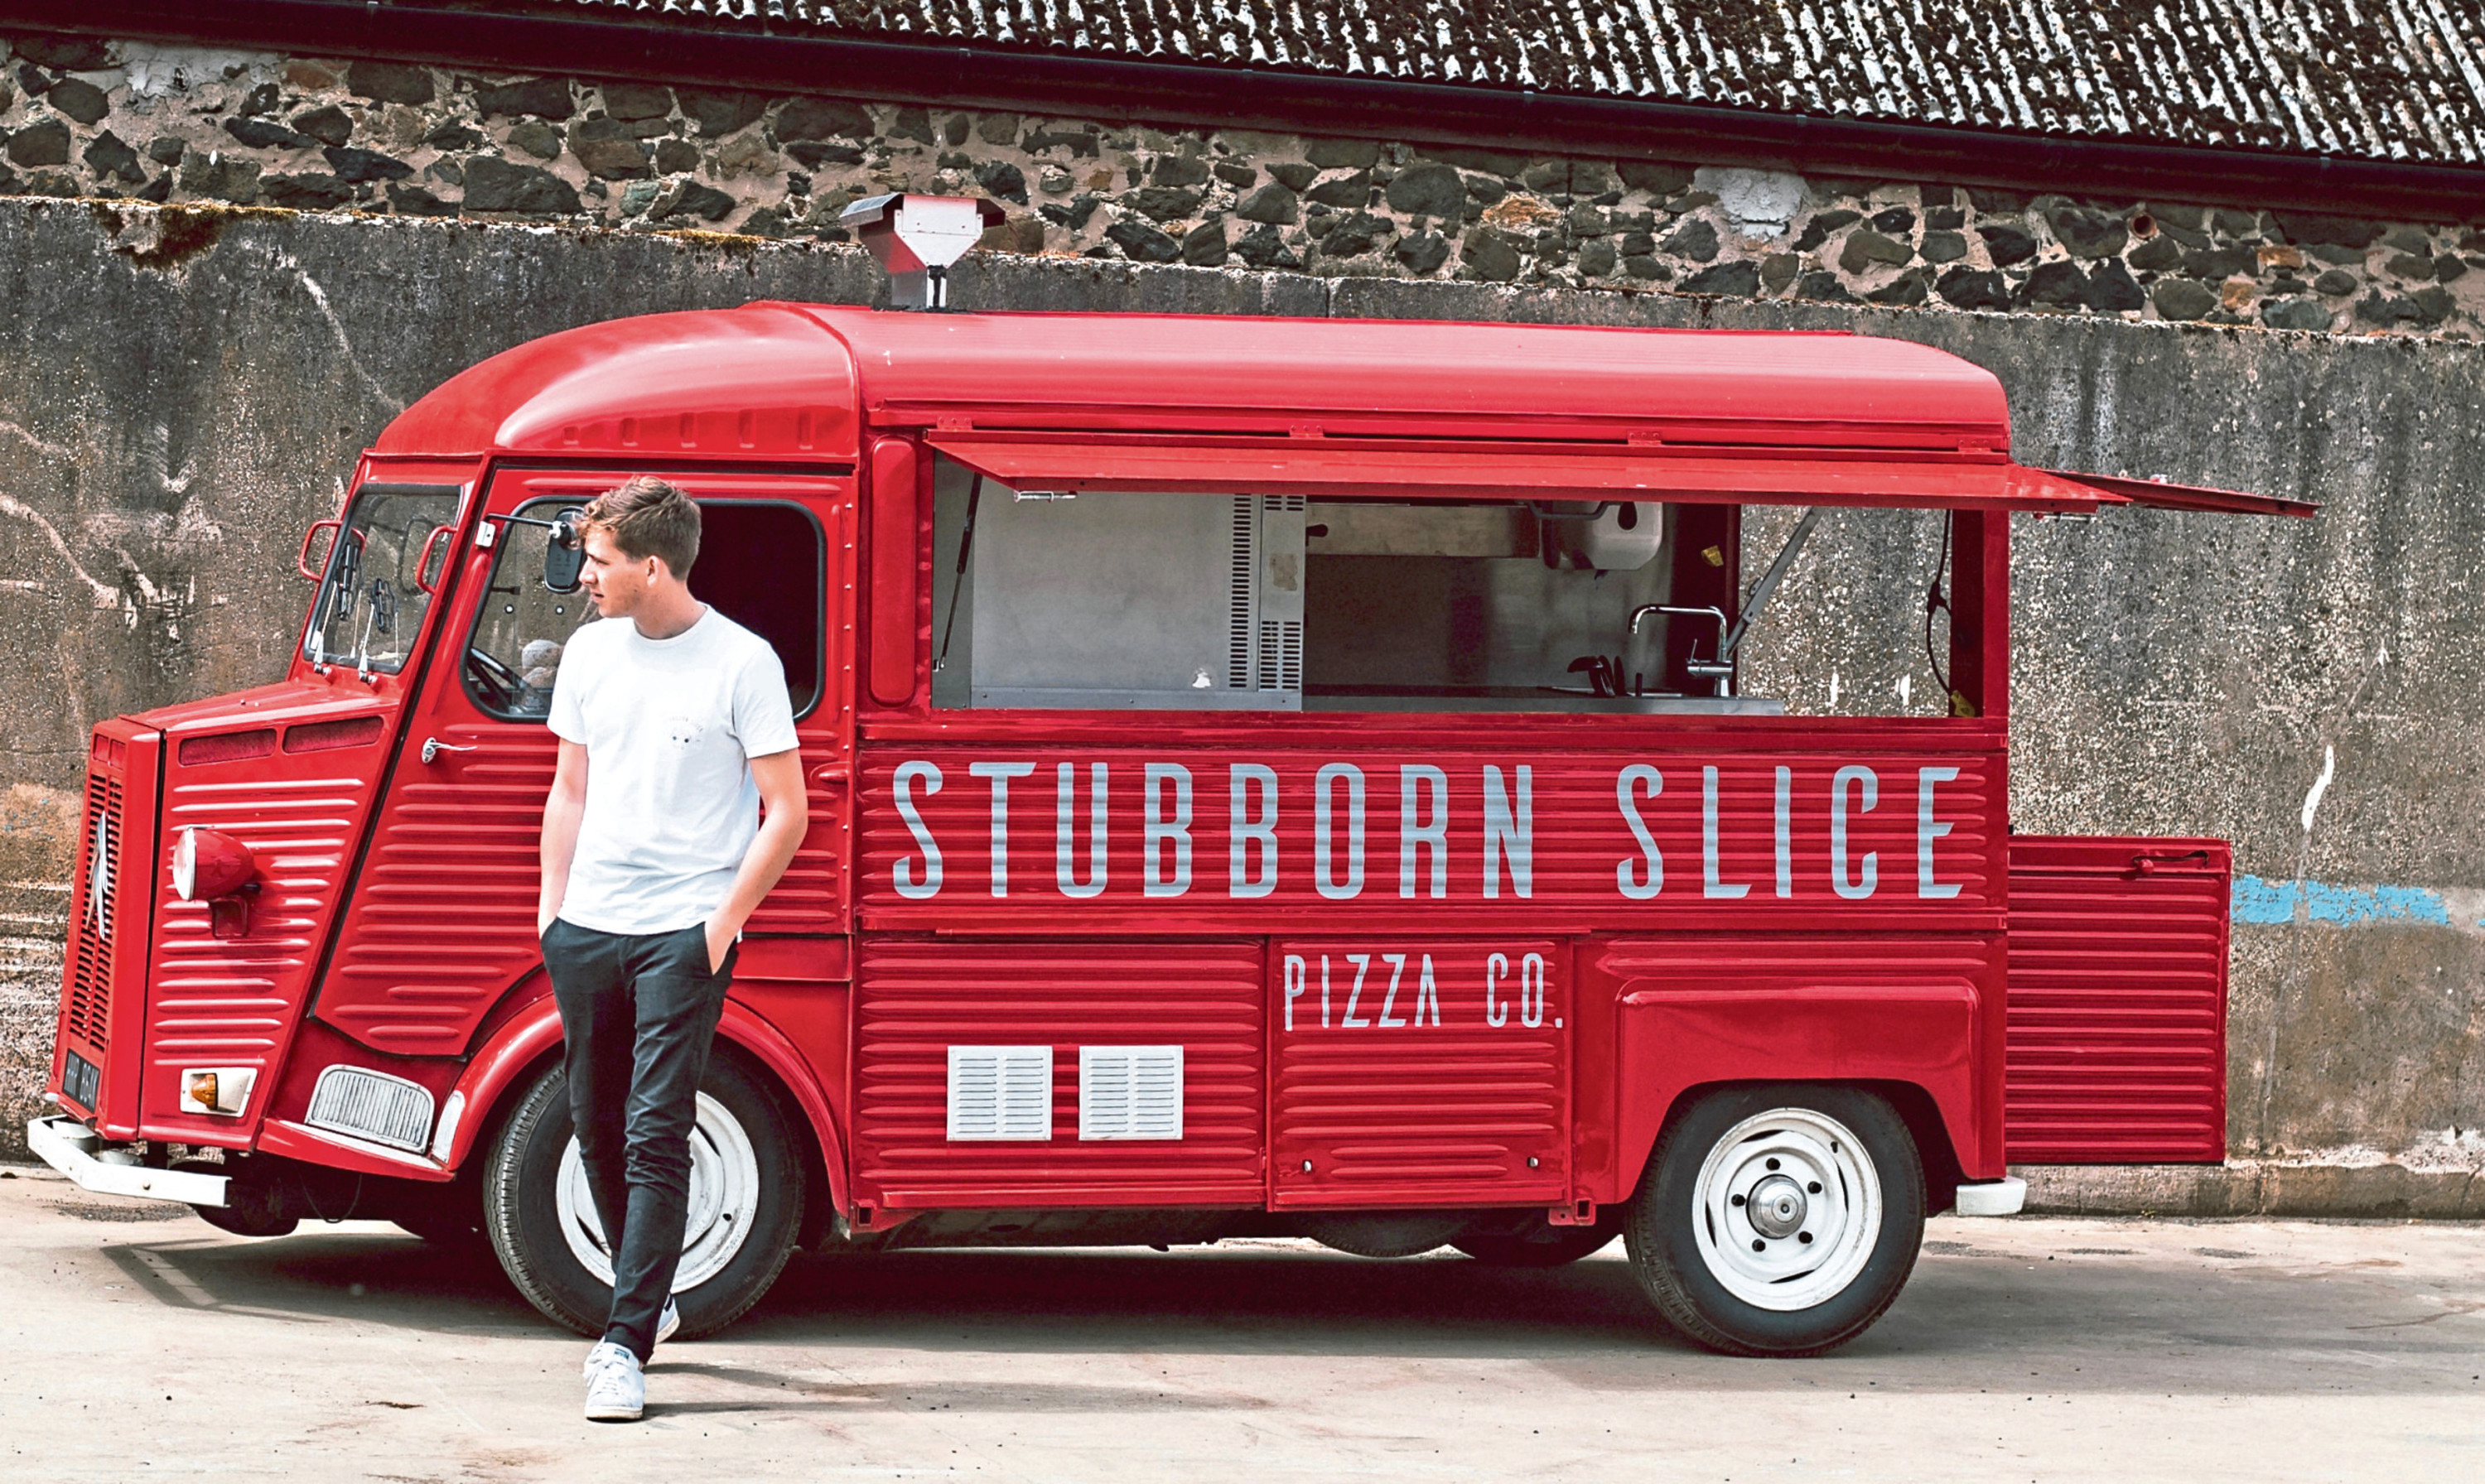 George Lorimer, owner of Stubborn Slice